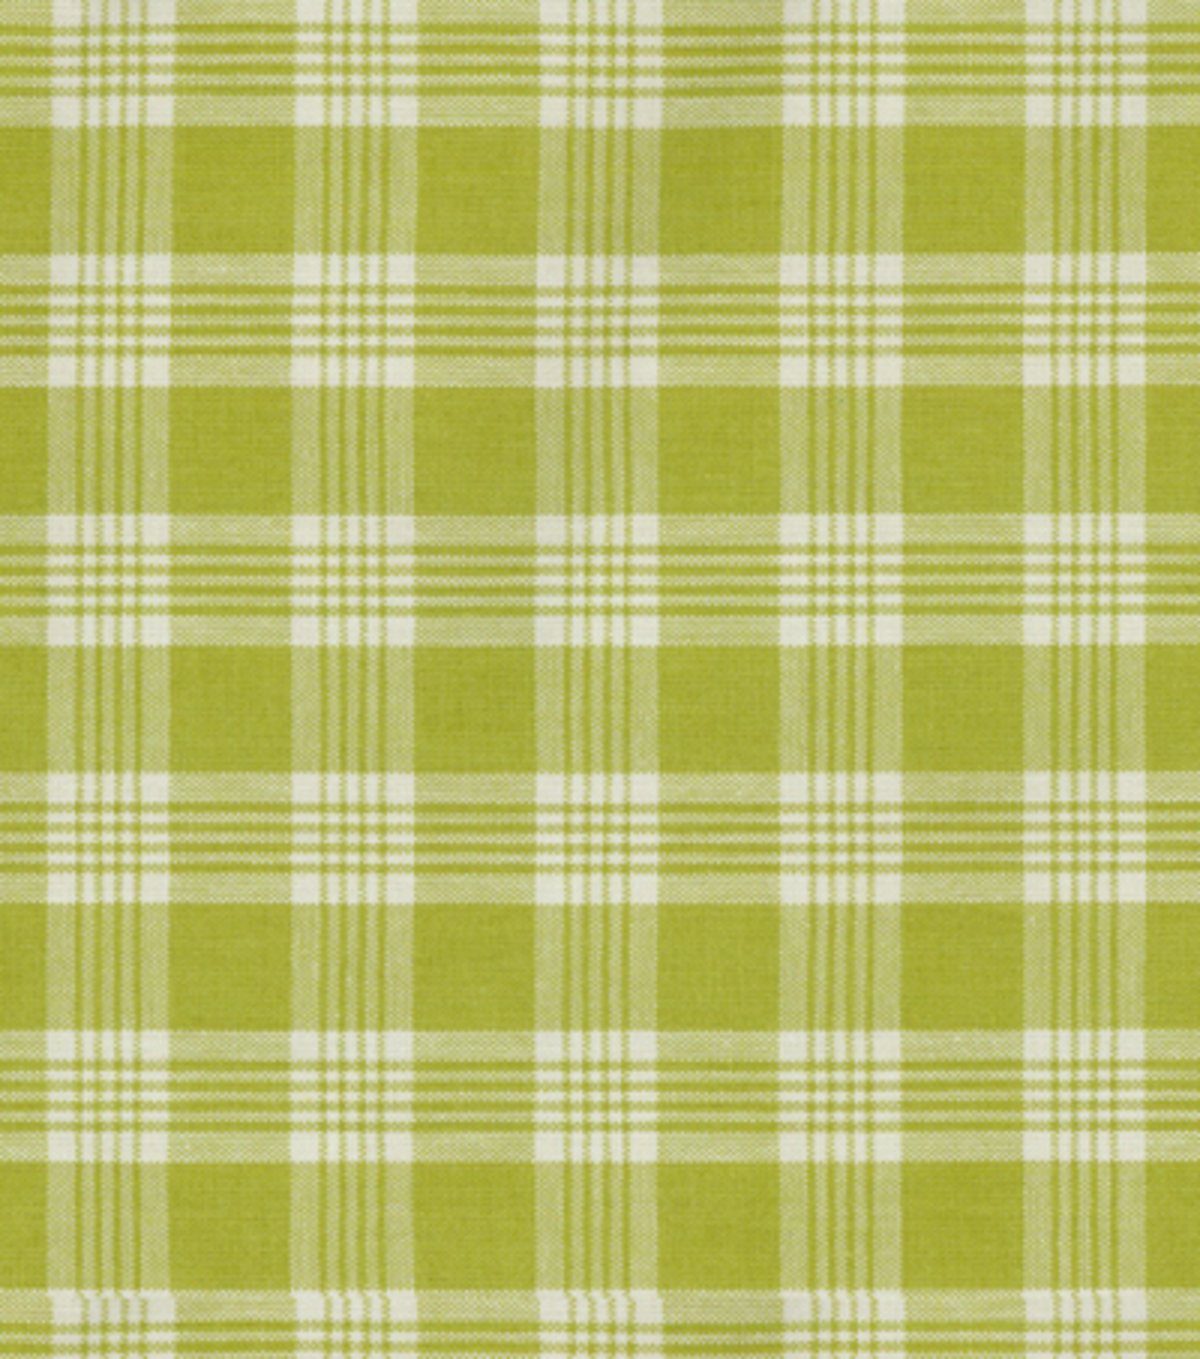 Home Decor 8\u0022x8\u0022 Fabric Swatch-Upholstery-Waverly Pendant Plaid/Snow Pea